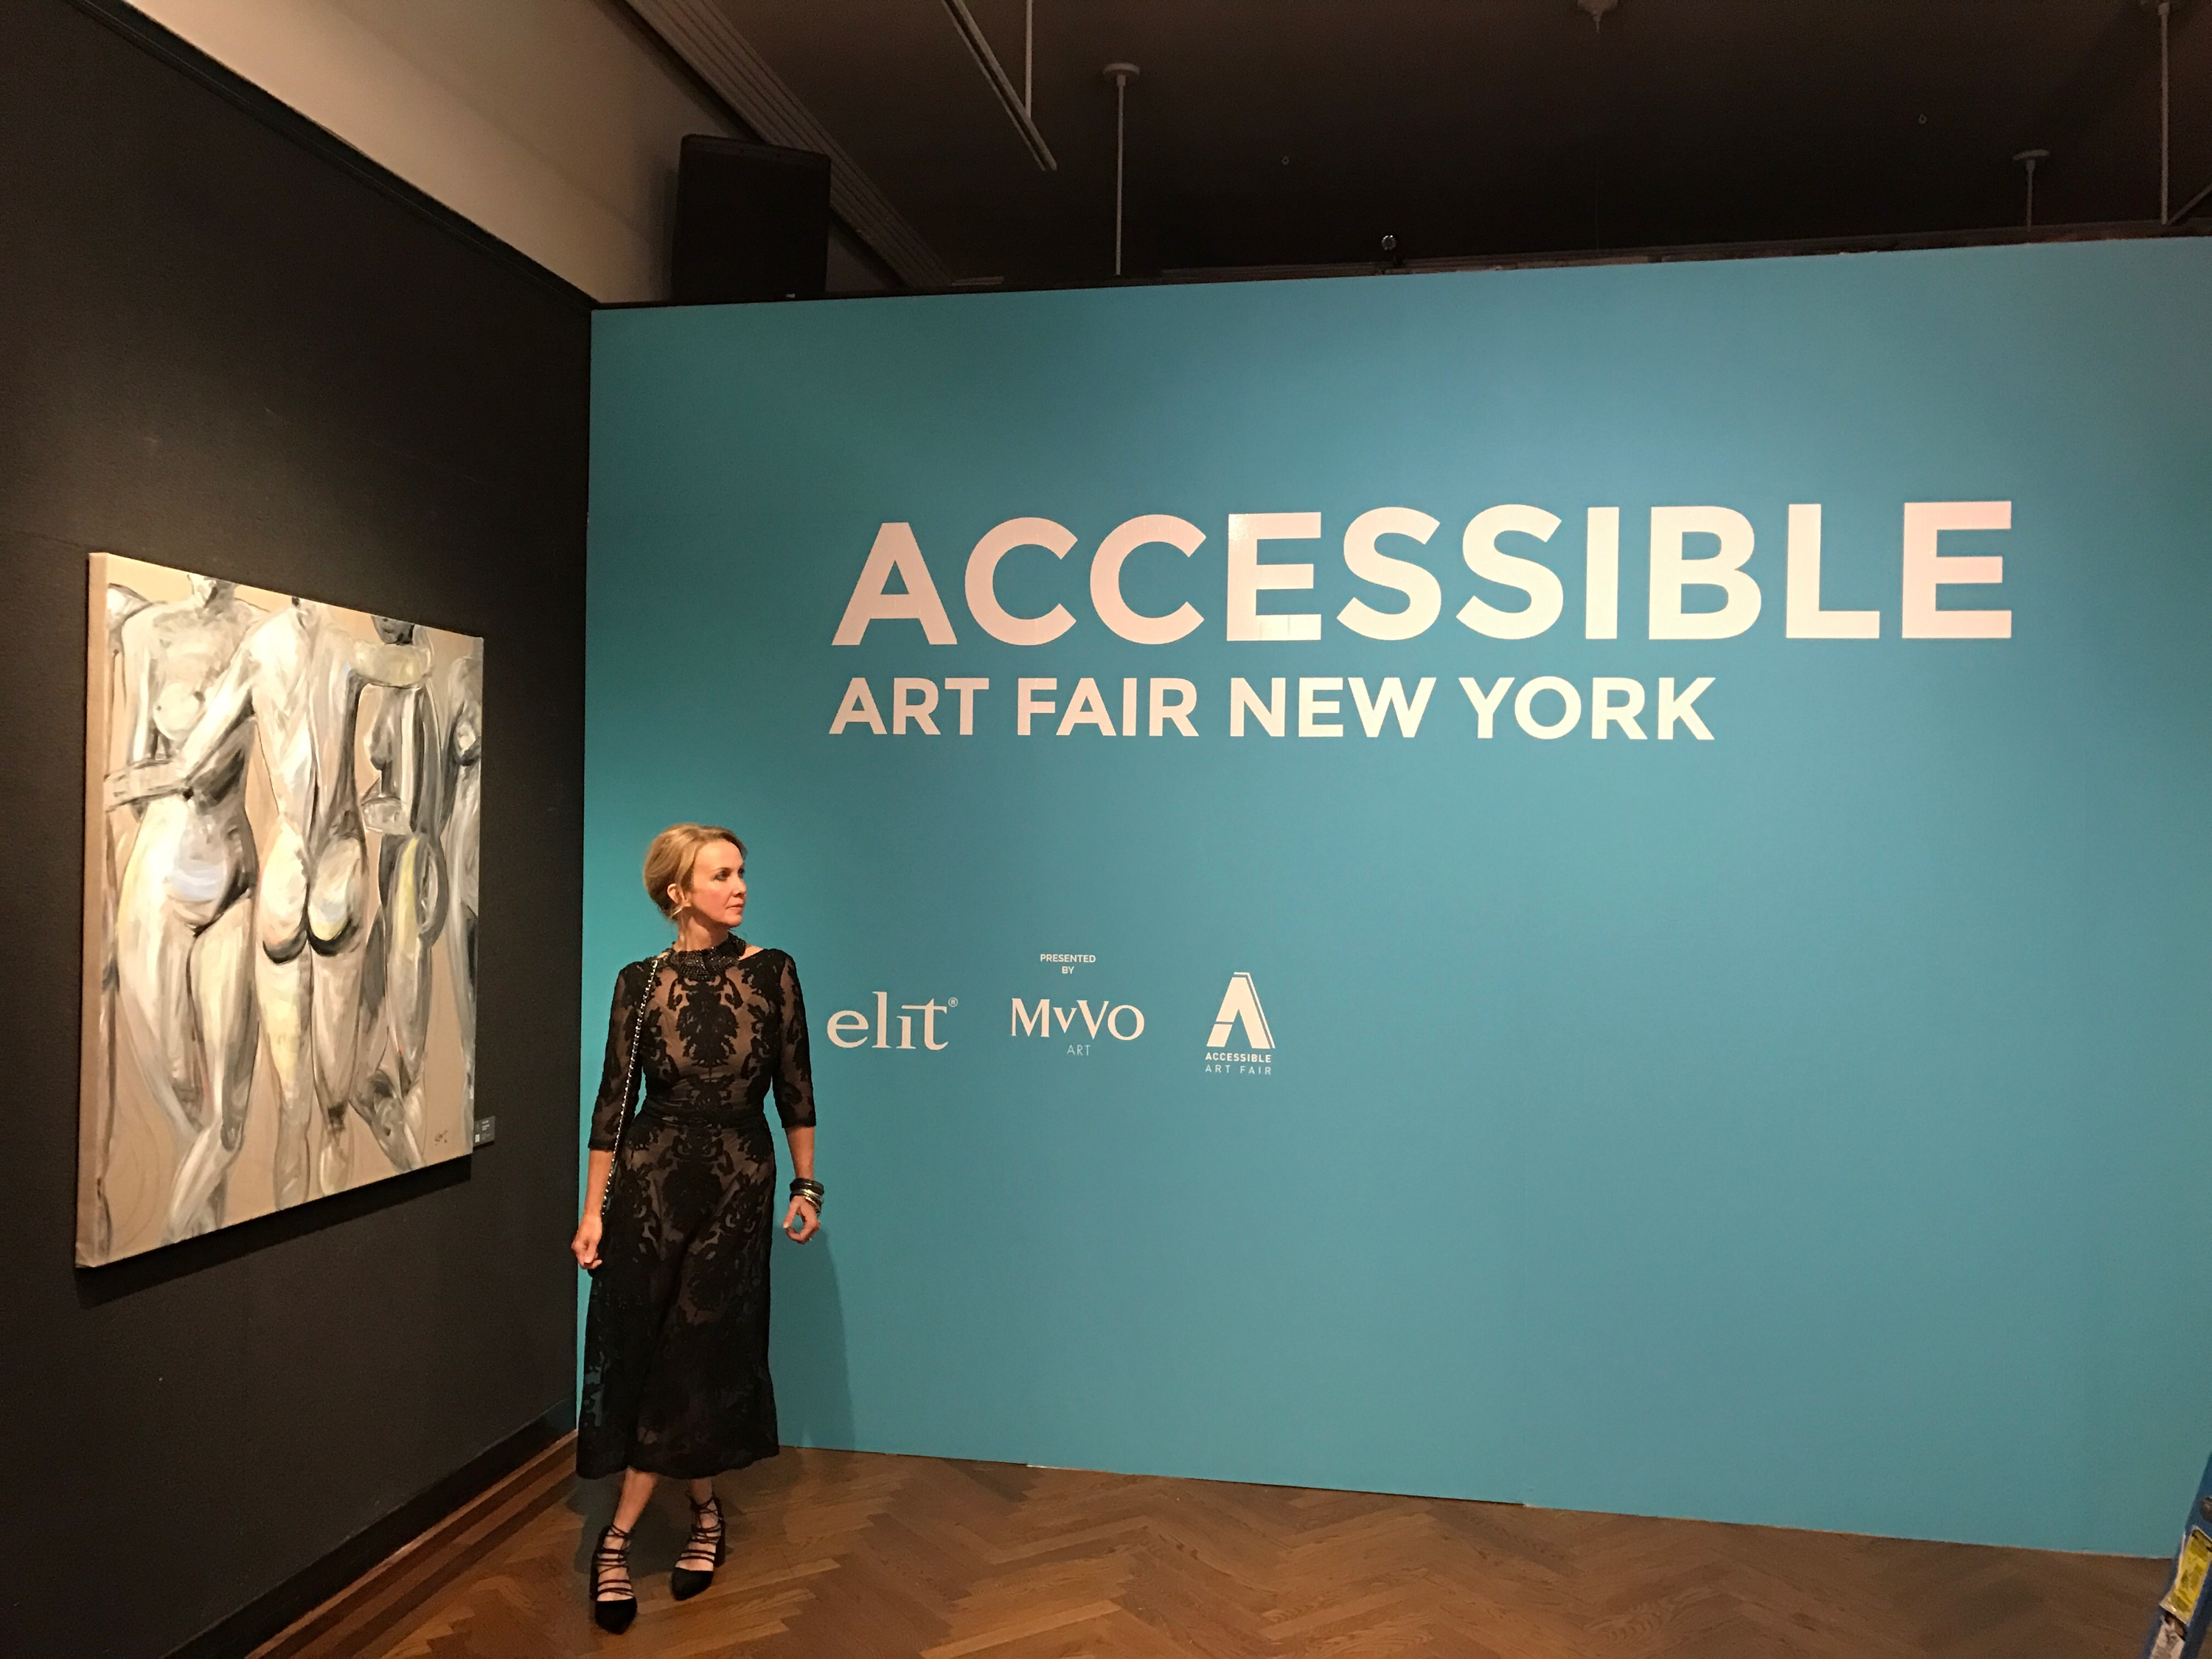 Accessible Art Fair New York